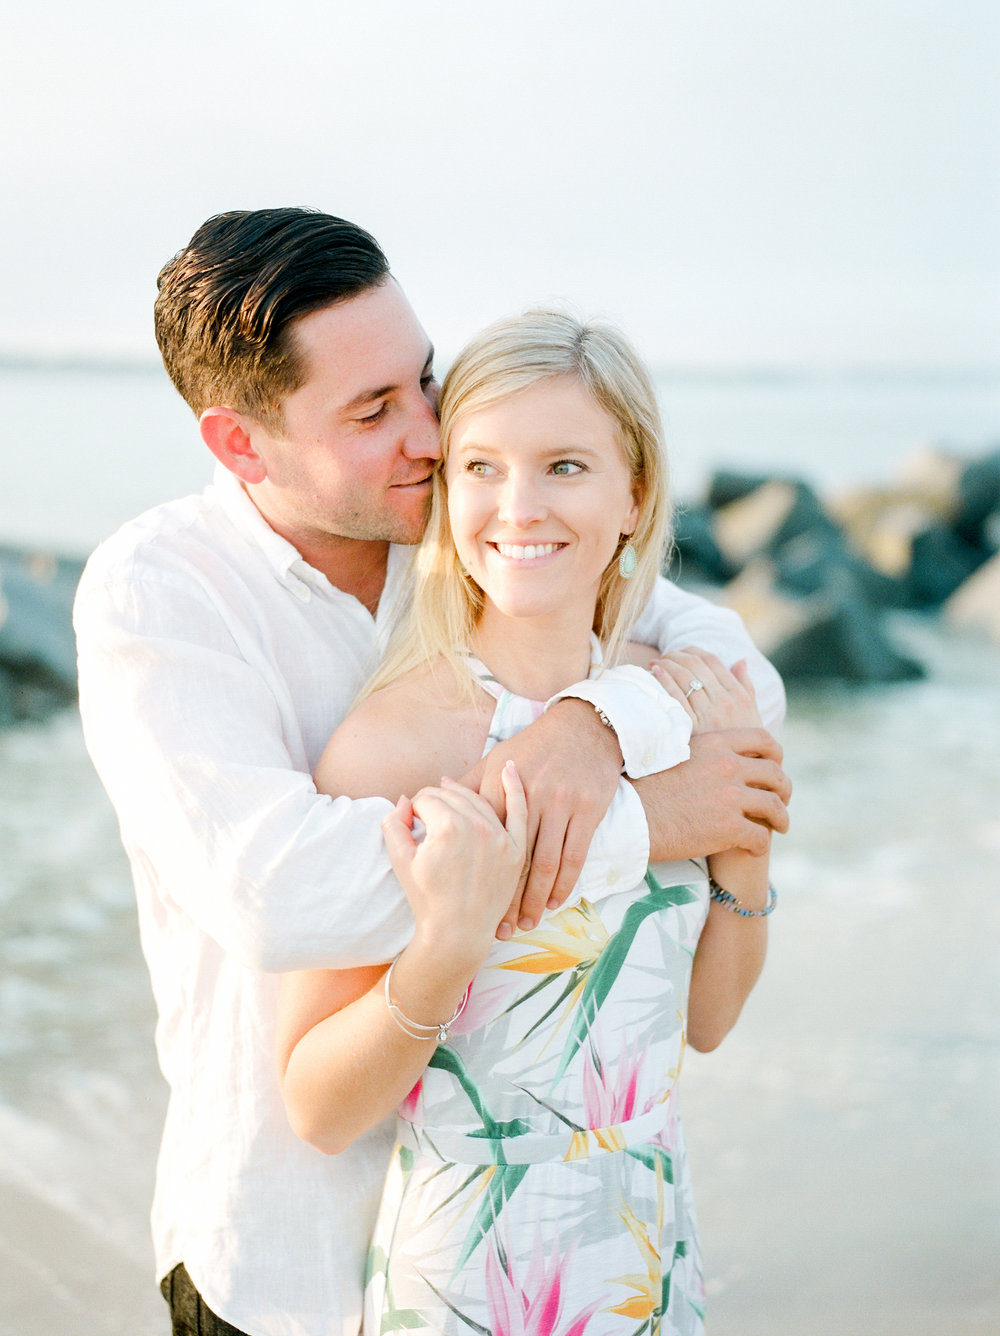 Lisa Silva Photography- Jacksonville, Florida Fine Art Film Wedding Photography 4.jpg